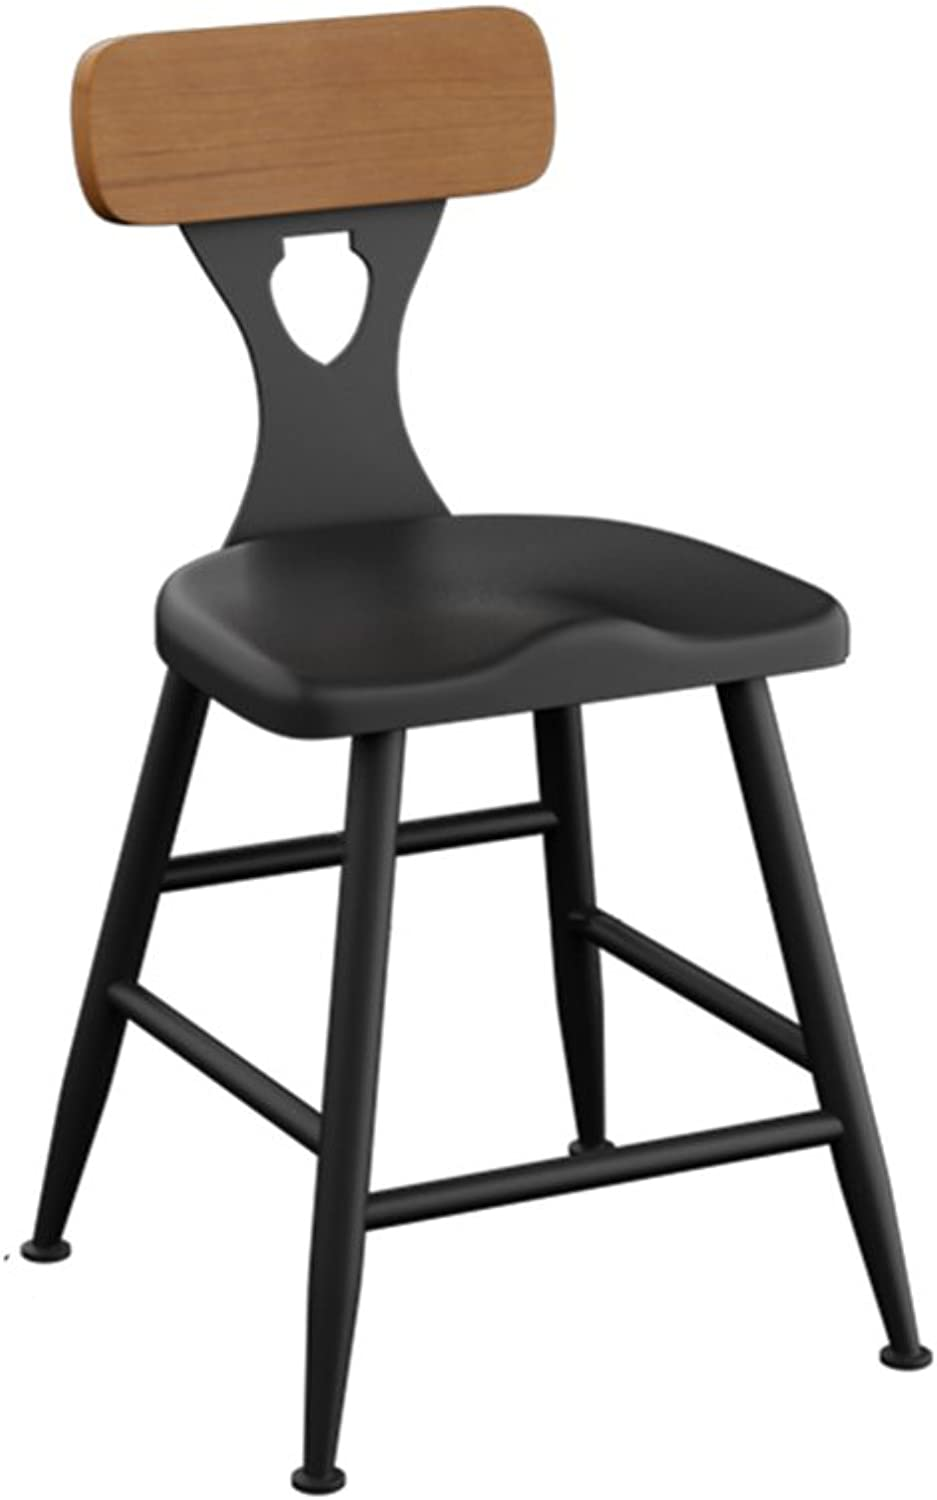 XIAO YING American Iron Solid Wood Bar Stool Home Bar Stool High Stool Modern Simple Bar Stool Bar Stool High Chair Creative Sool (color   Backrest, Size   40  40  65cm)